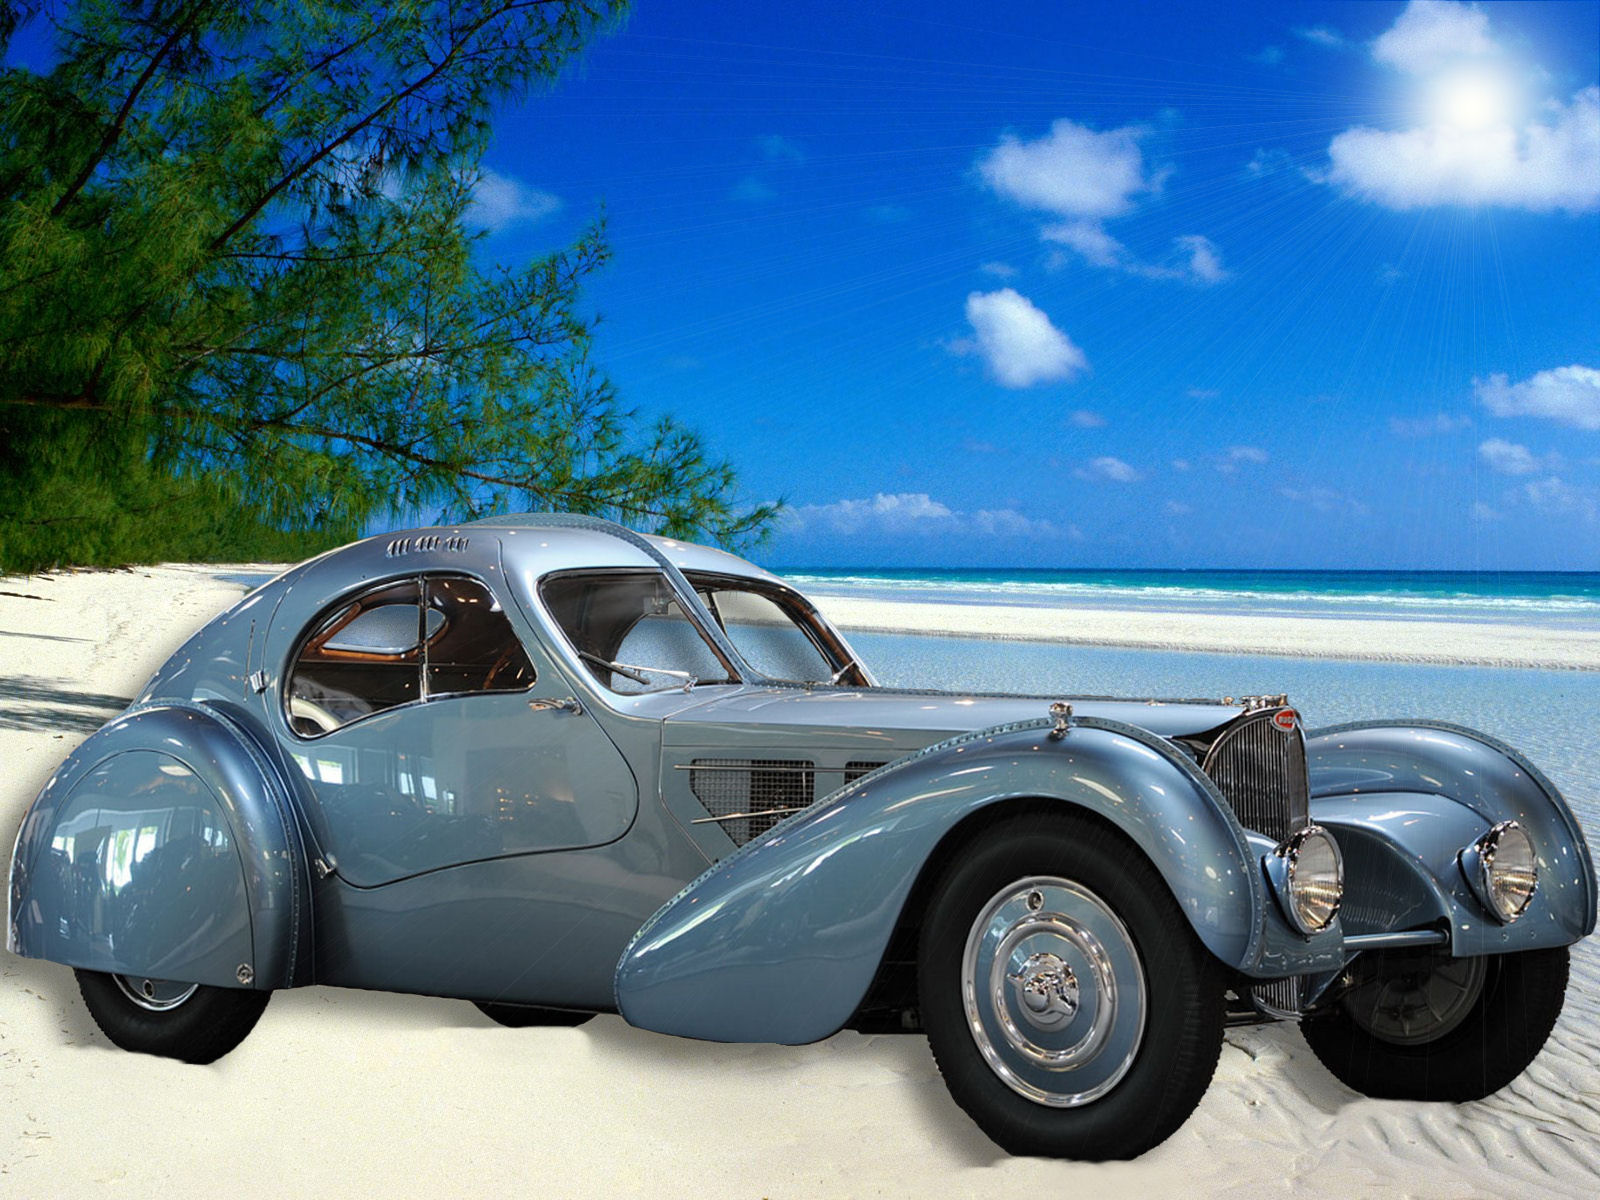 Cars Wallpapers Bugatti 57sc atlantic 1936